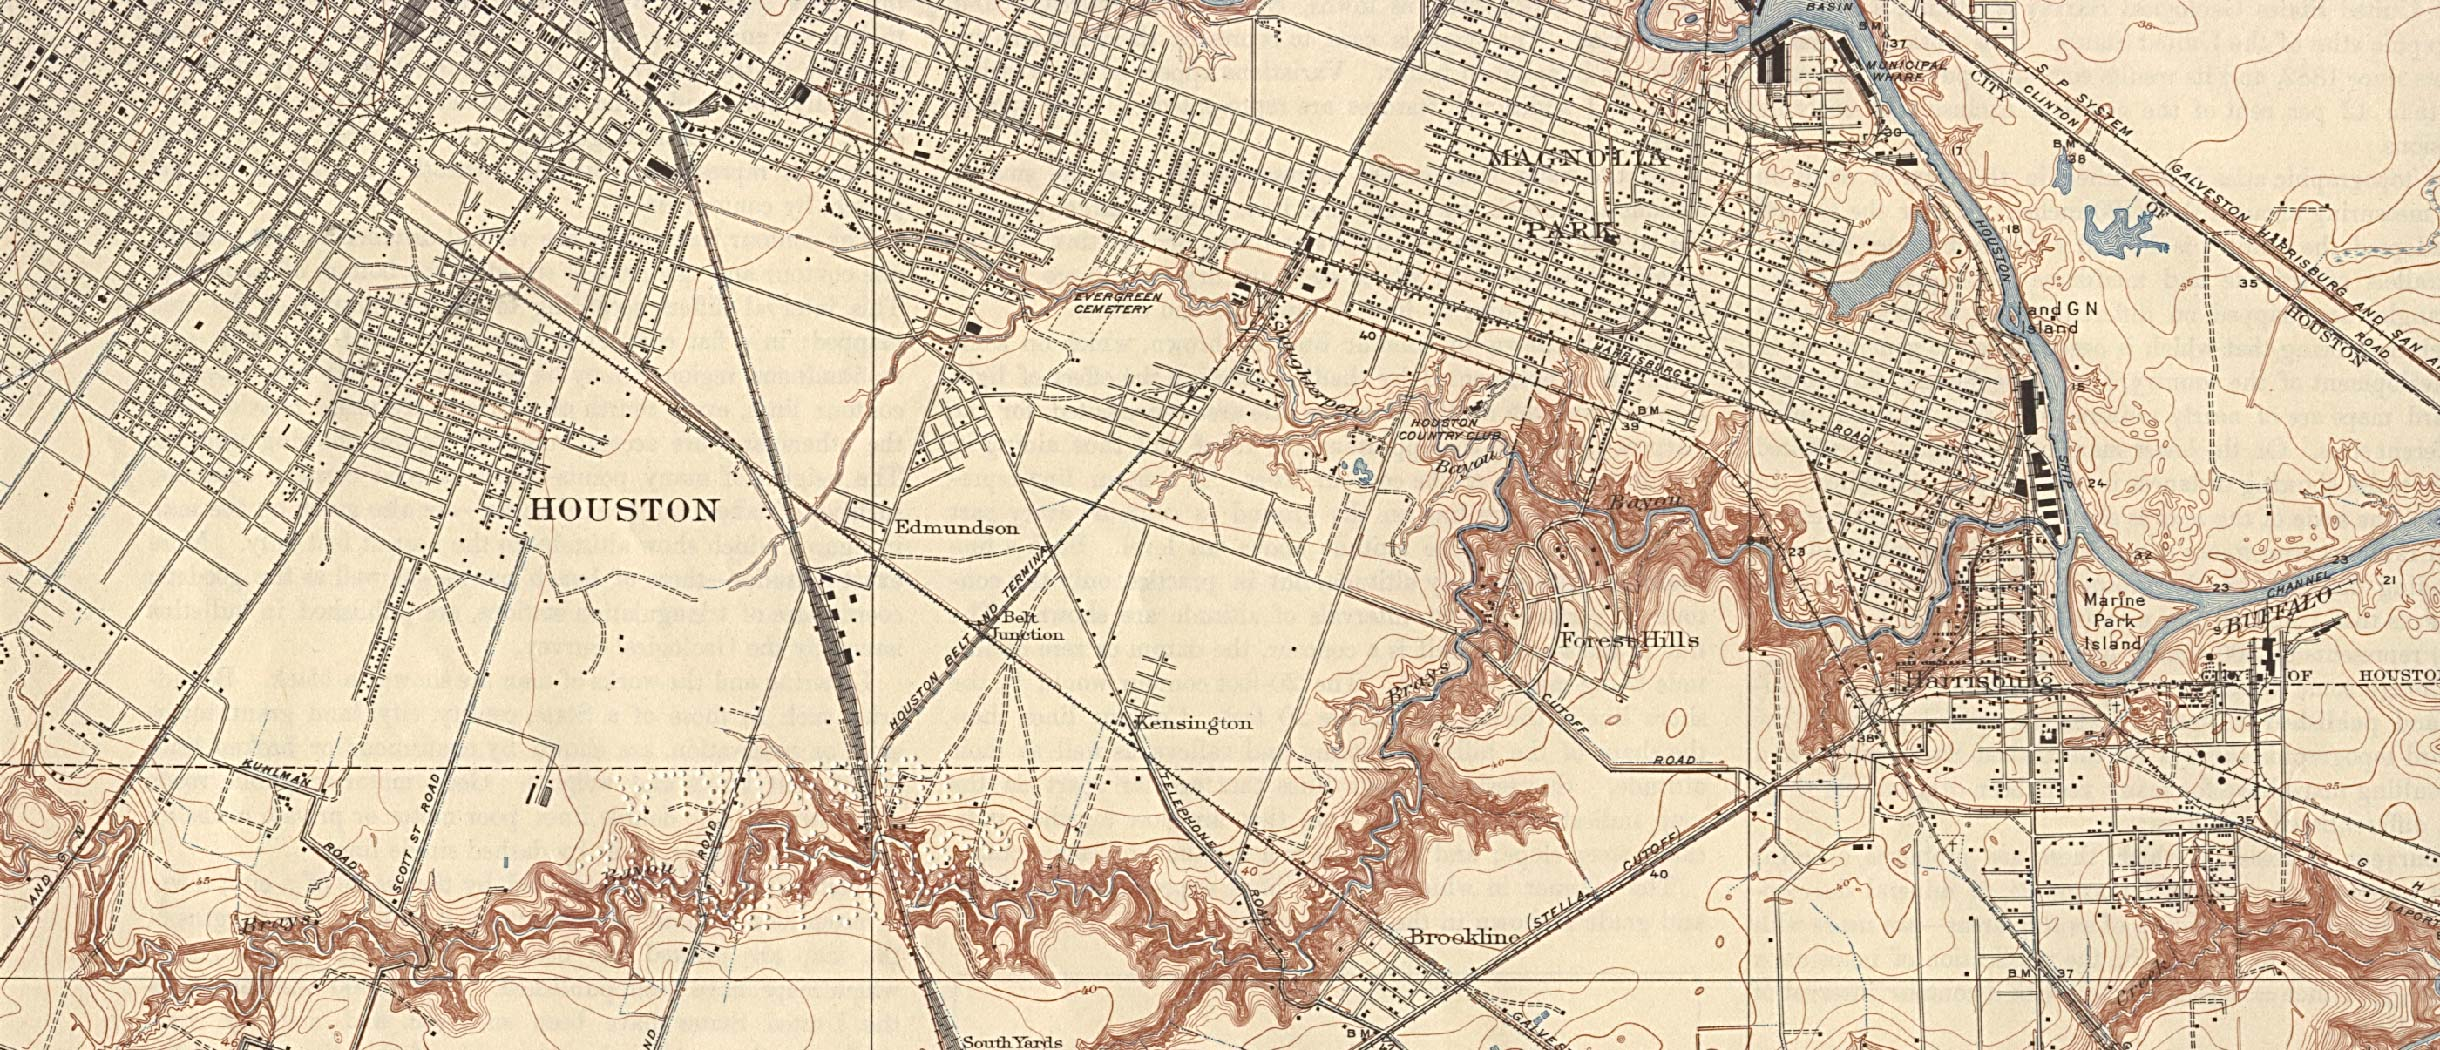 Historical Maps of U.S Cities. Houston, Texas (South East) 1922 Original Scale 1:31,680. U.S. Geological Survey. Reprint, 1932 (780K)